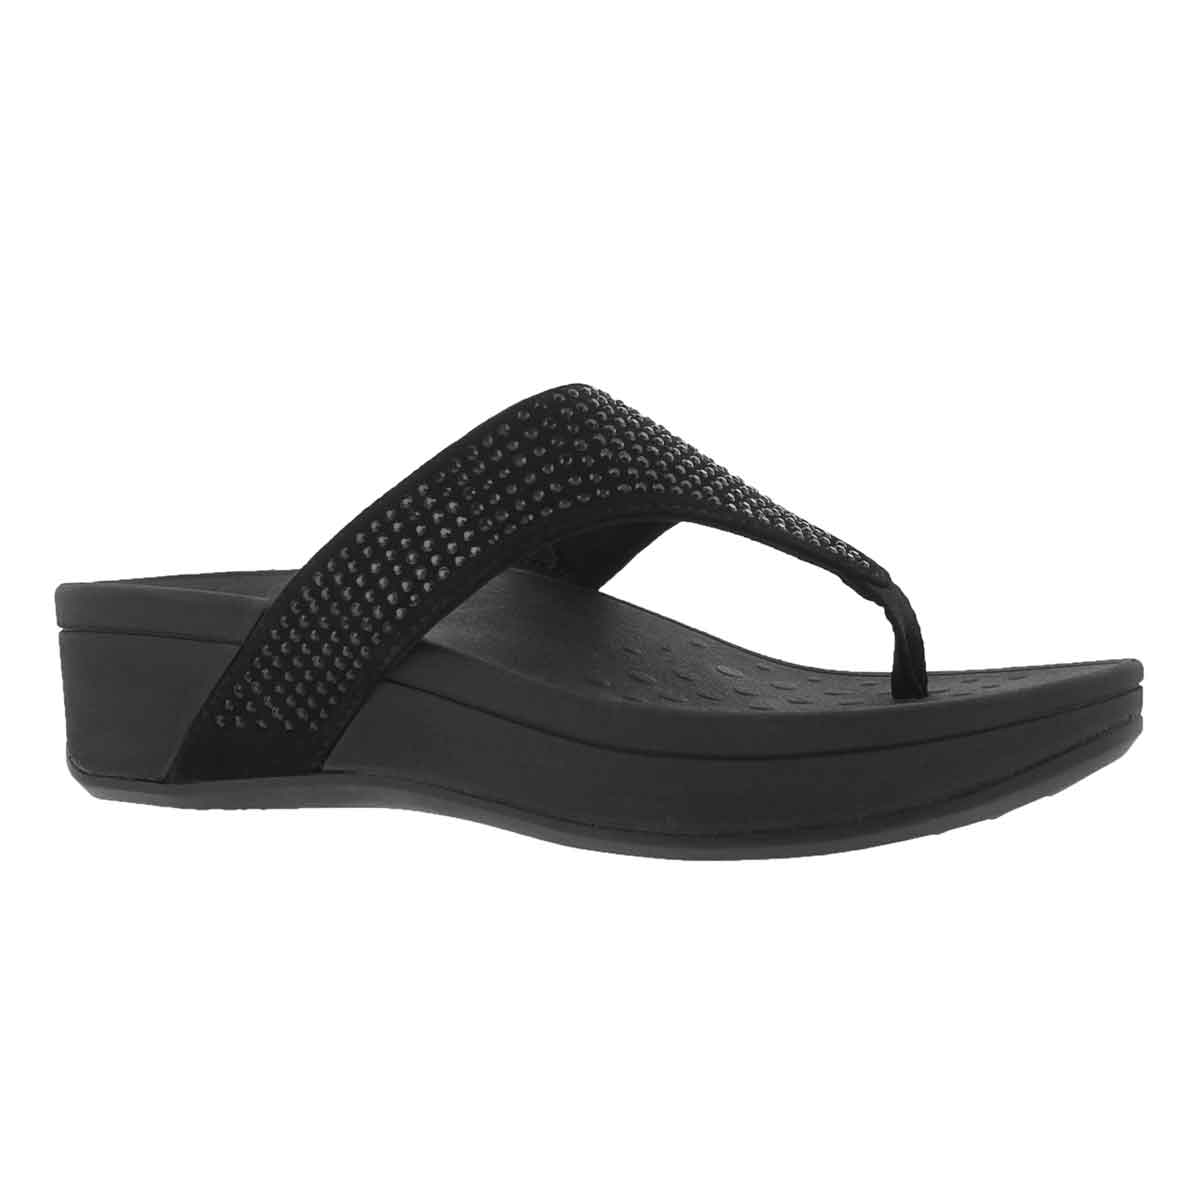 Women's NAPLES black arch support wedge sandals